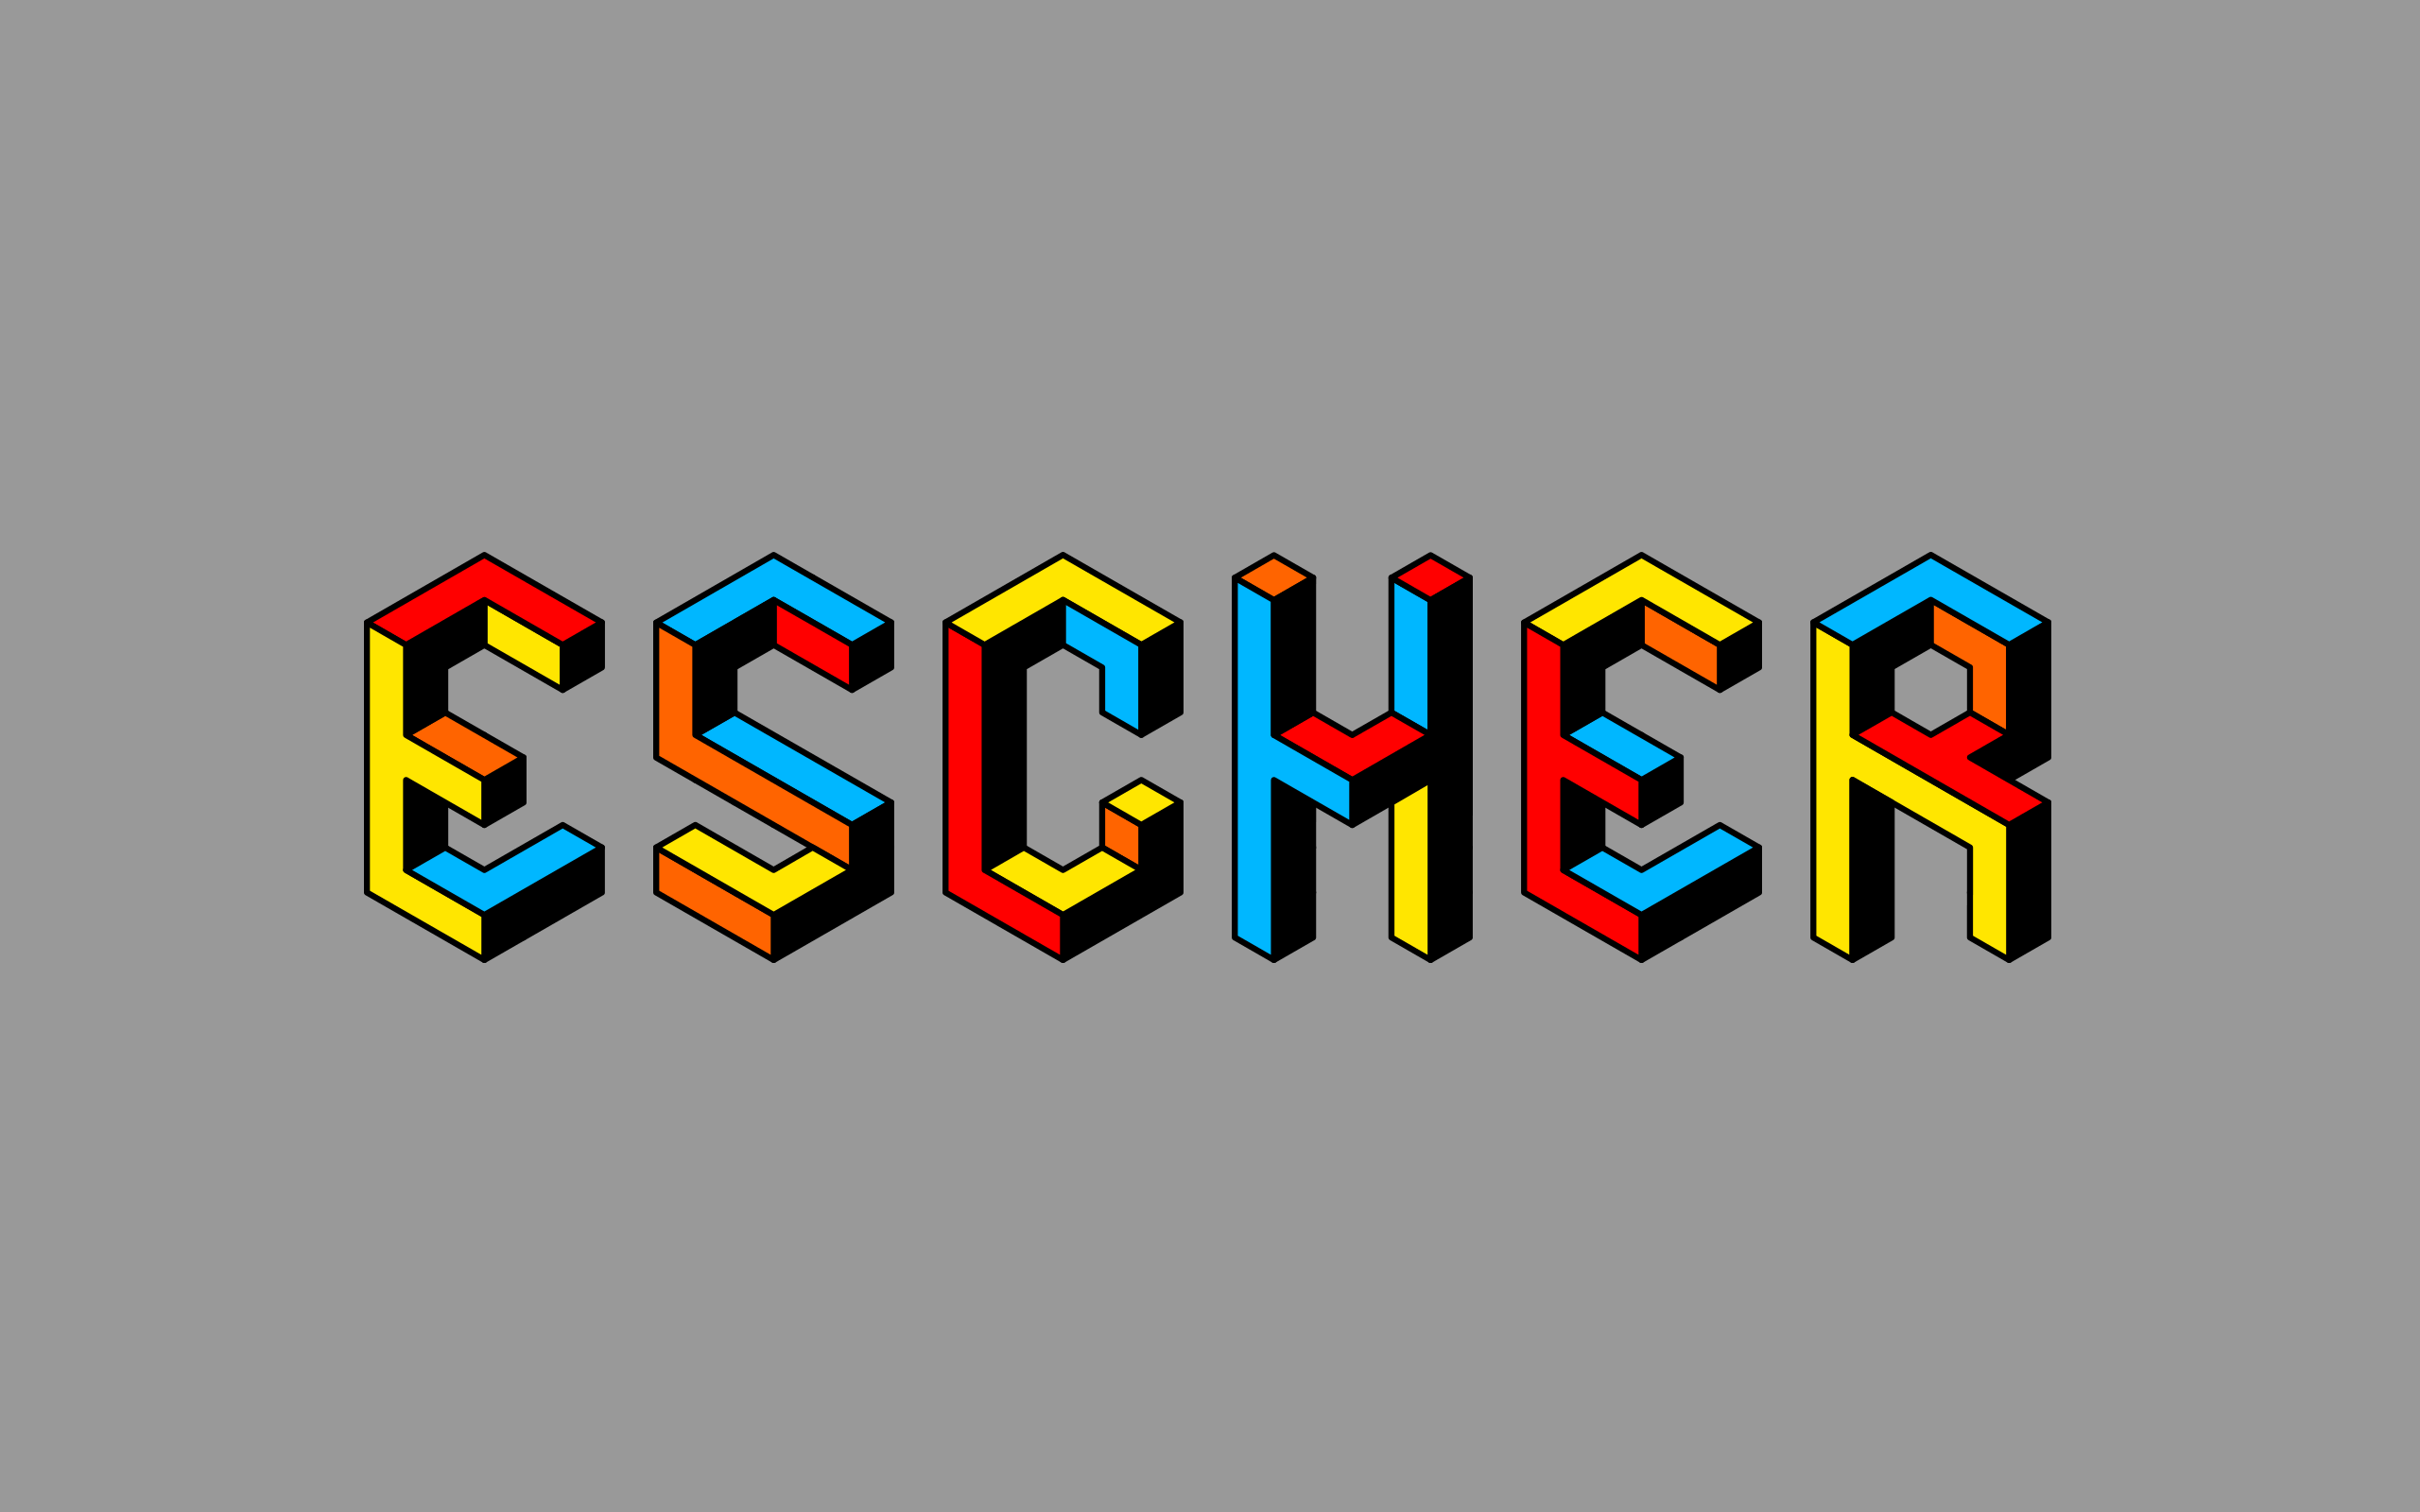 hexahedra-escher